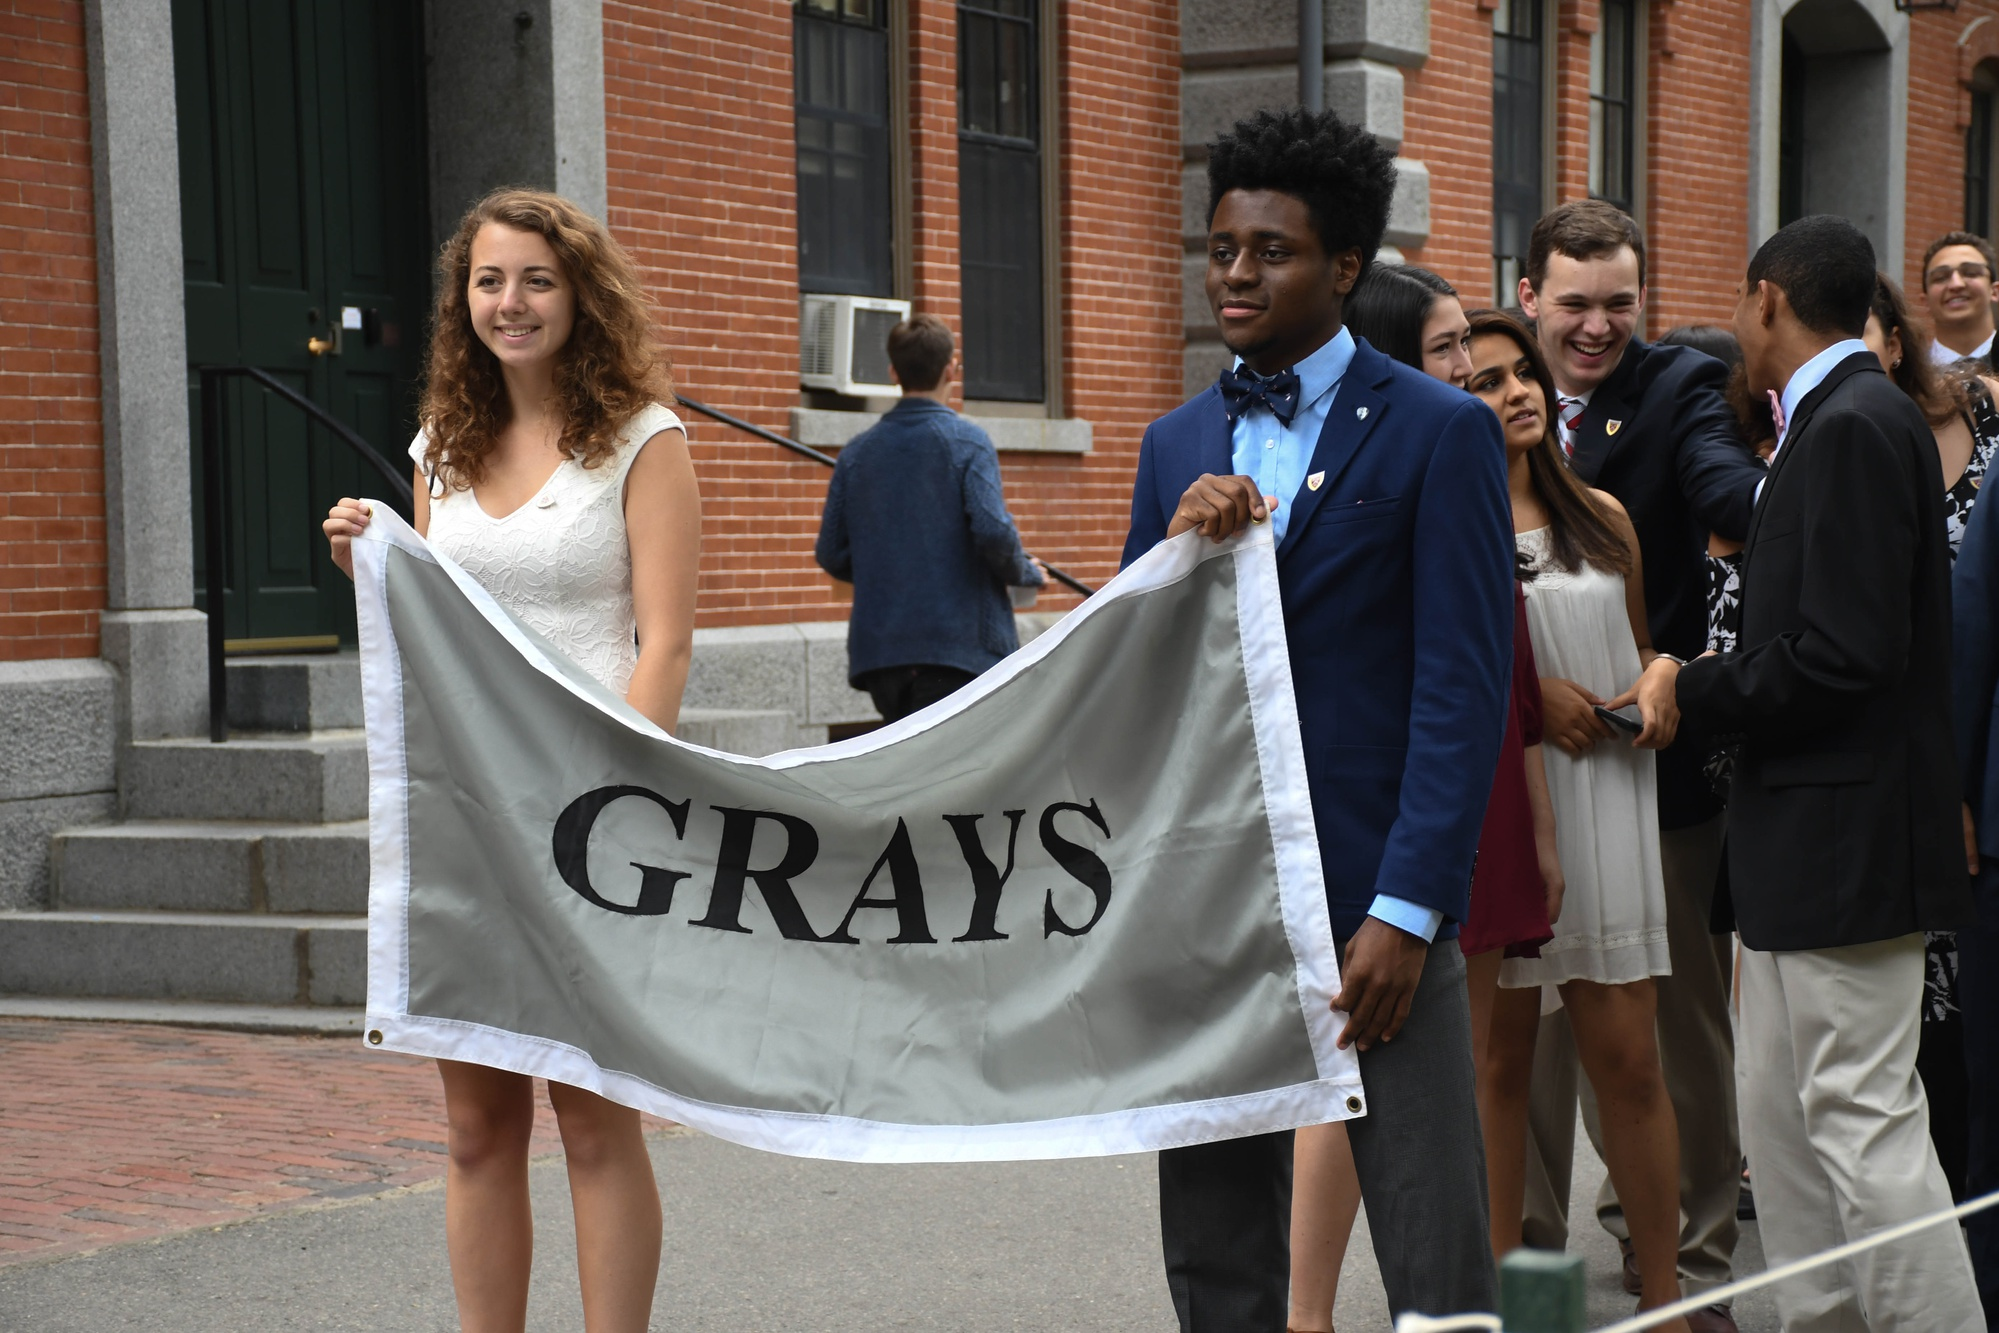 Amanda R. Powers '21 and Eliel T. E. Ig-Izevbekhai '21, residents of Grays Middle entryway, hold up the banner for their dorm during the procession to Tercentenary Theater for Convocation on Tuesday.